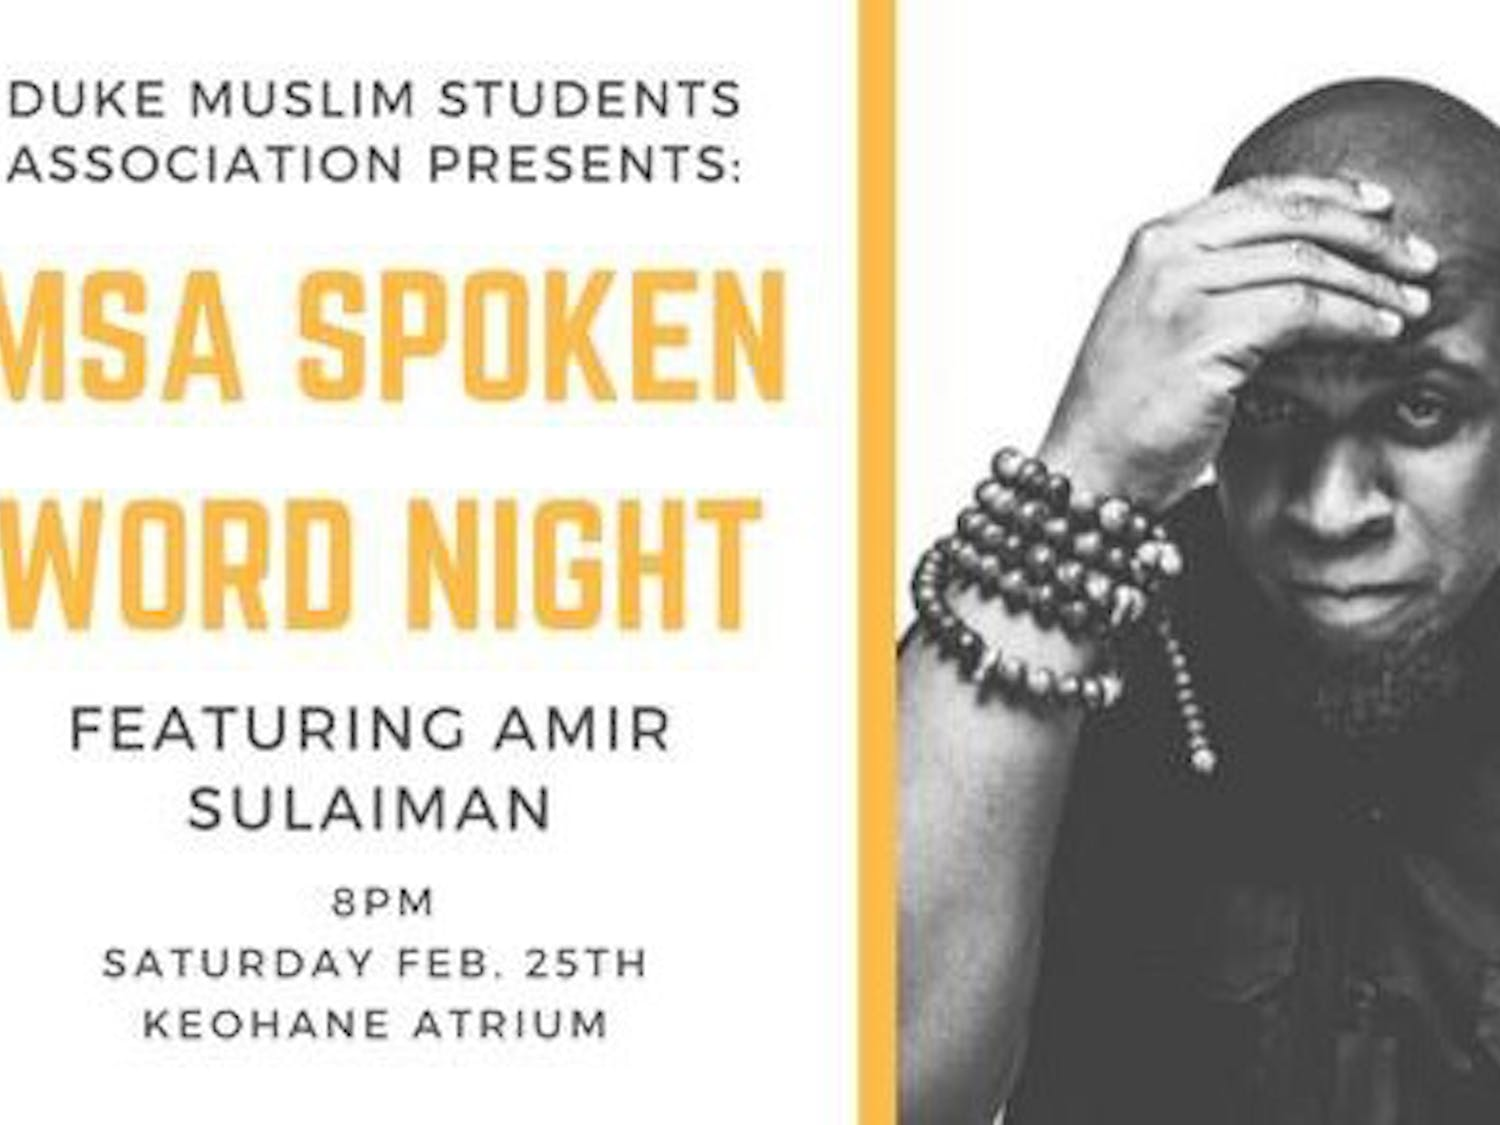 The Muslim Student Association's spoken word night featured special guest Amir Sulaiman.